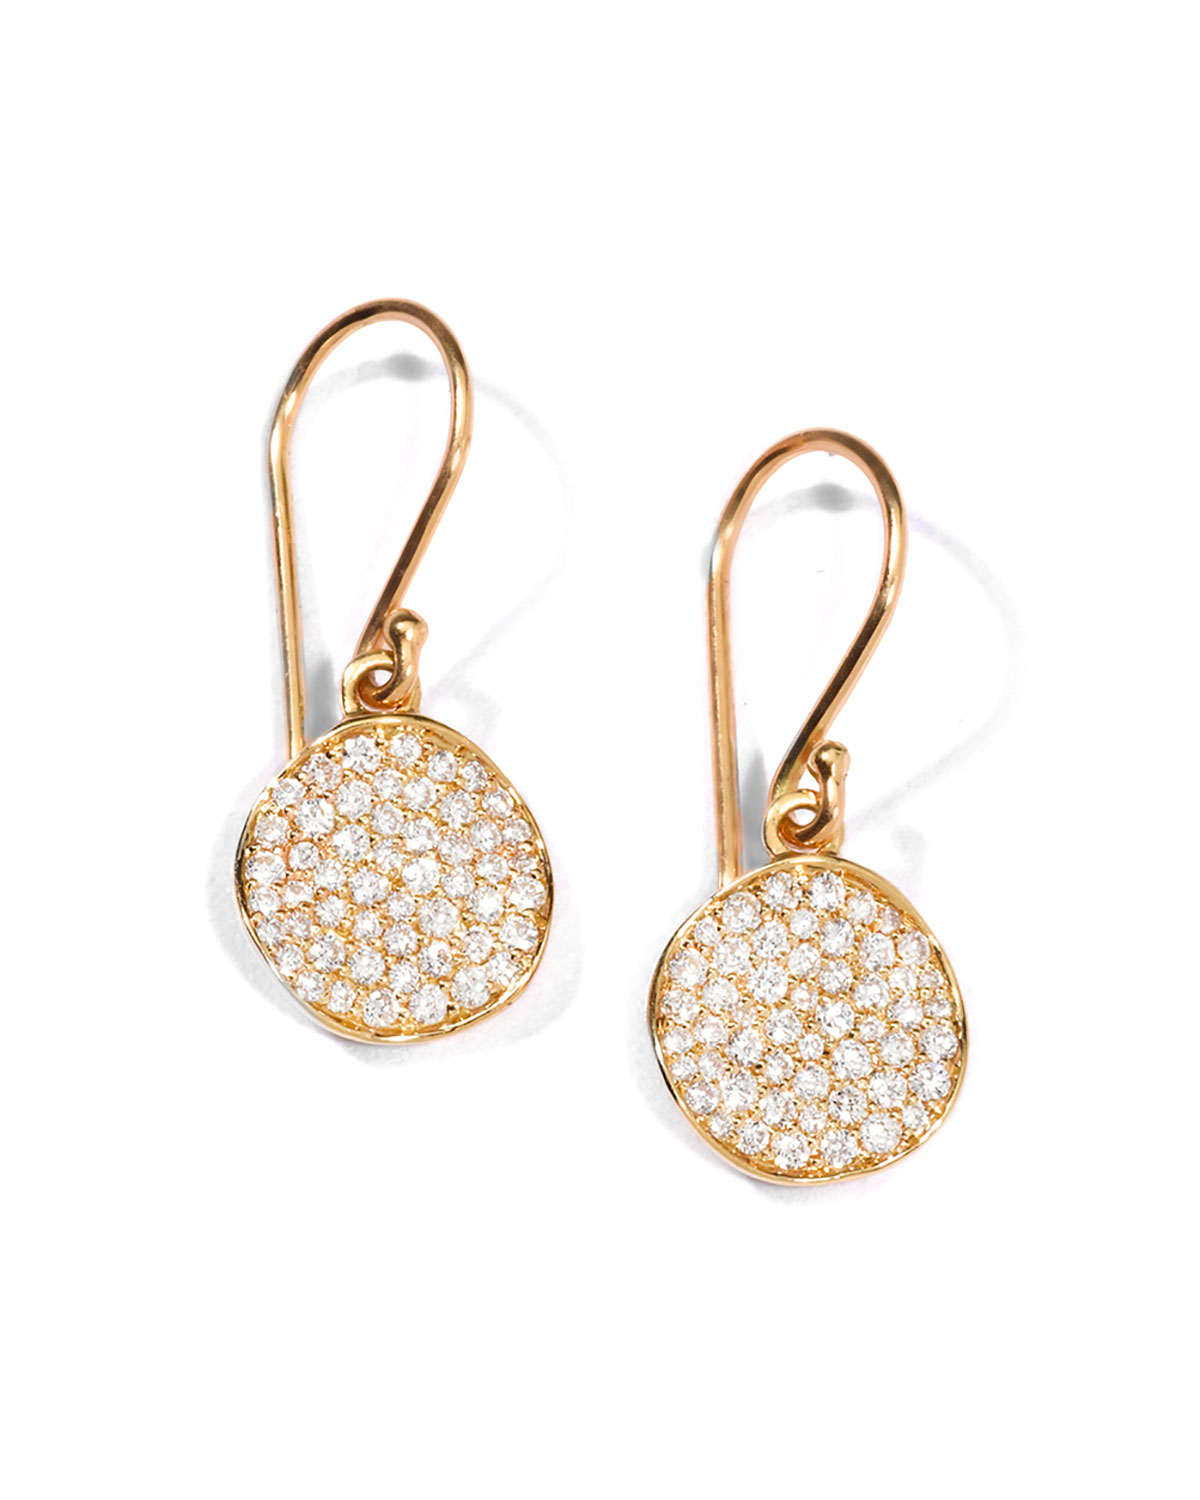 Ippolita 18K GOLD STARDUST HAMMERED DISC DROP EARRINGS WITH DIAMONDS